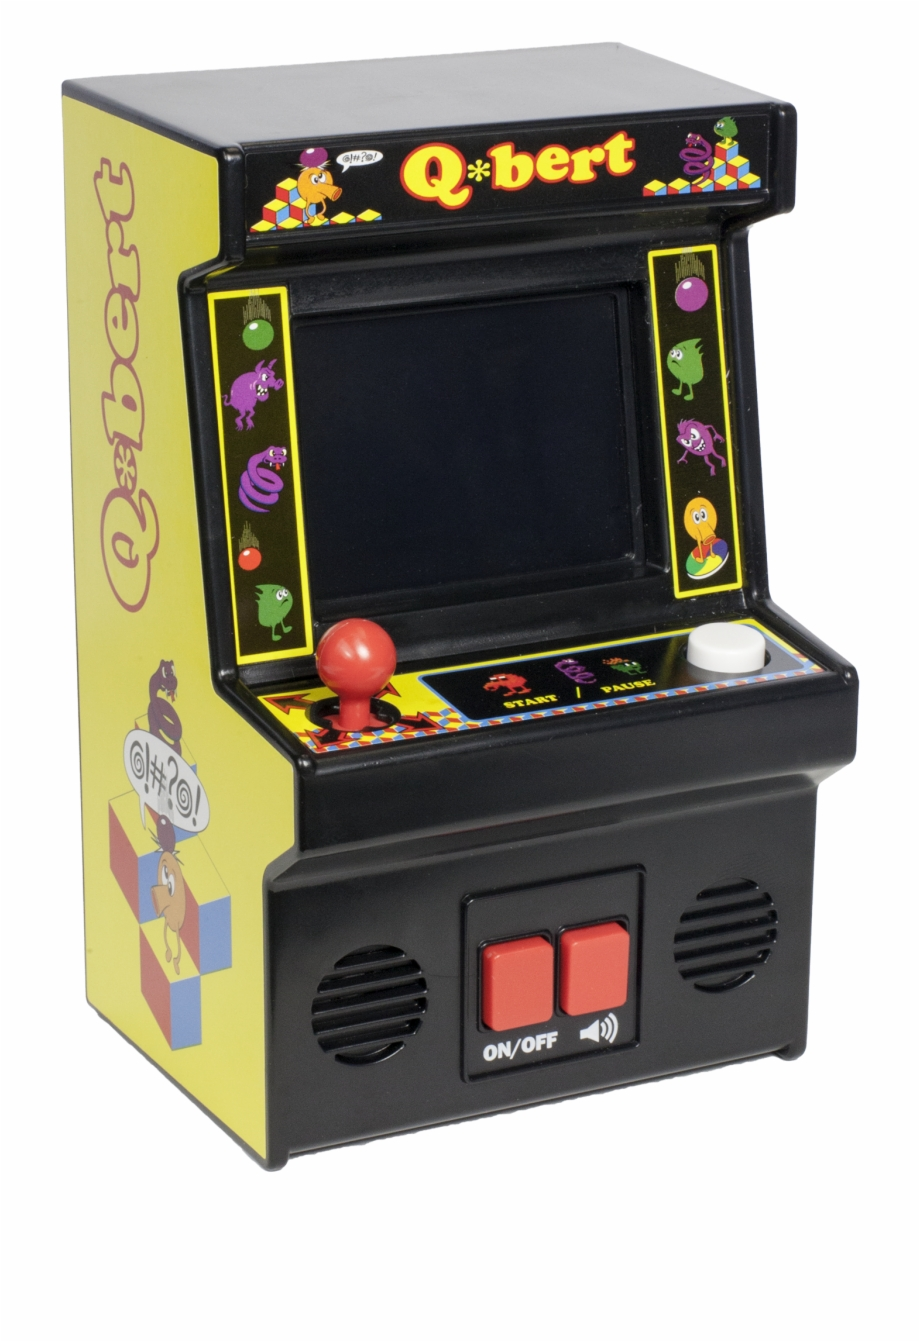 Centipede Mini Arcade Game, Transparent Png Download For Free.